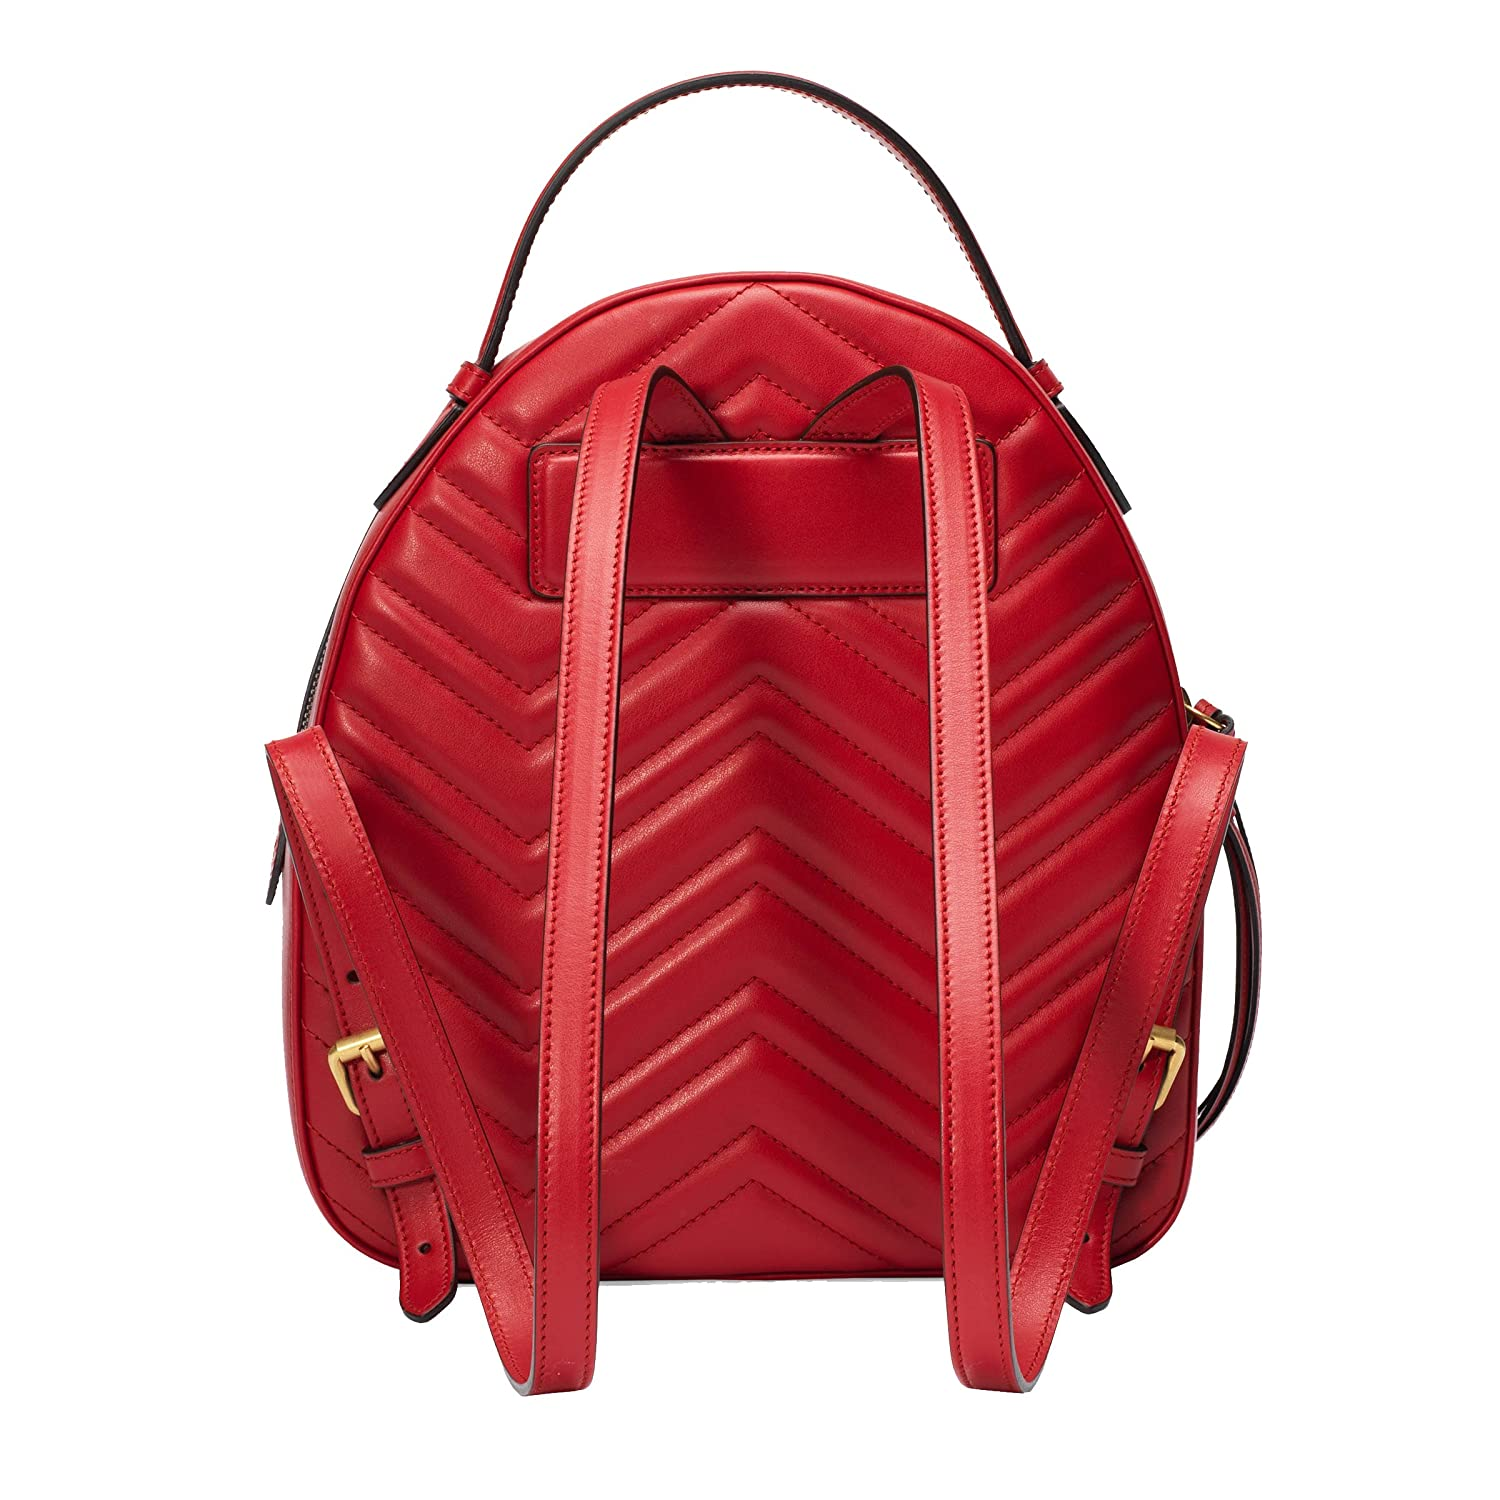 436b33ffec9 Gucci Women s 476671DTDHD6433 Red Leather Backpack  Amazon.co.uk  Clothing